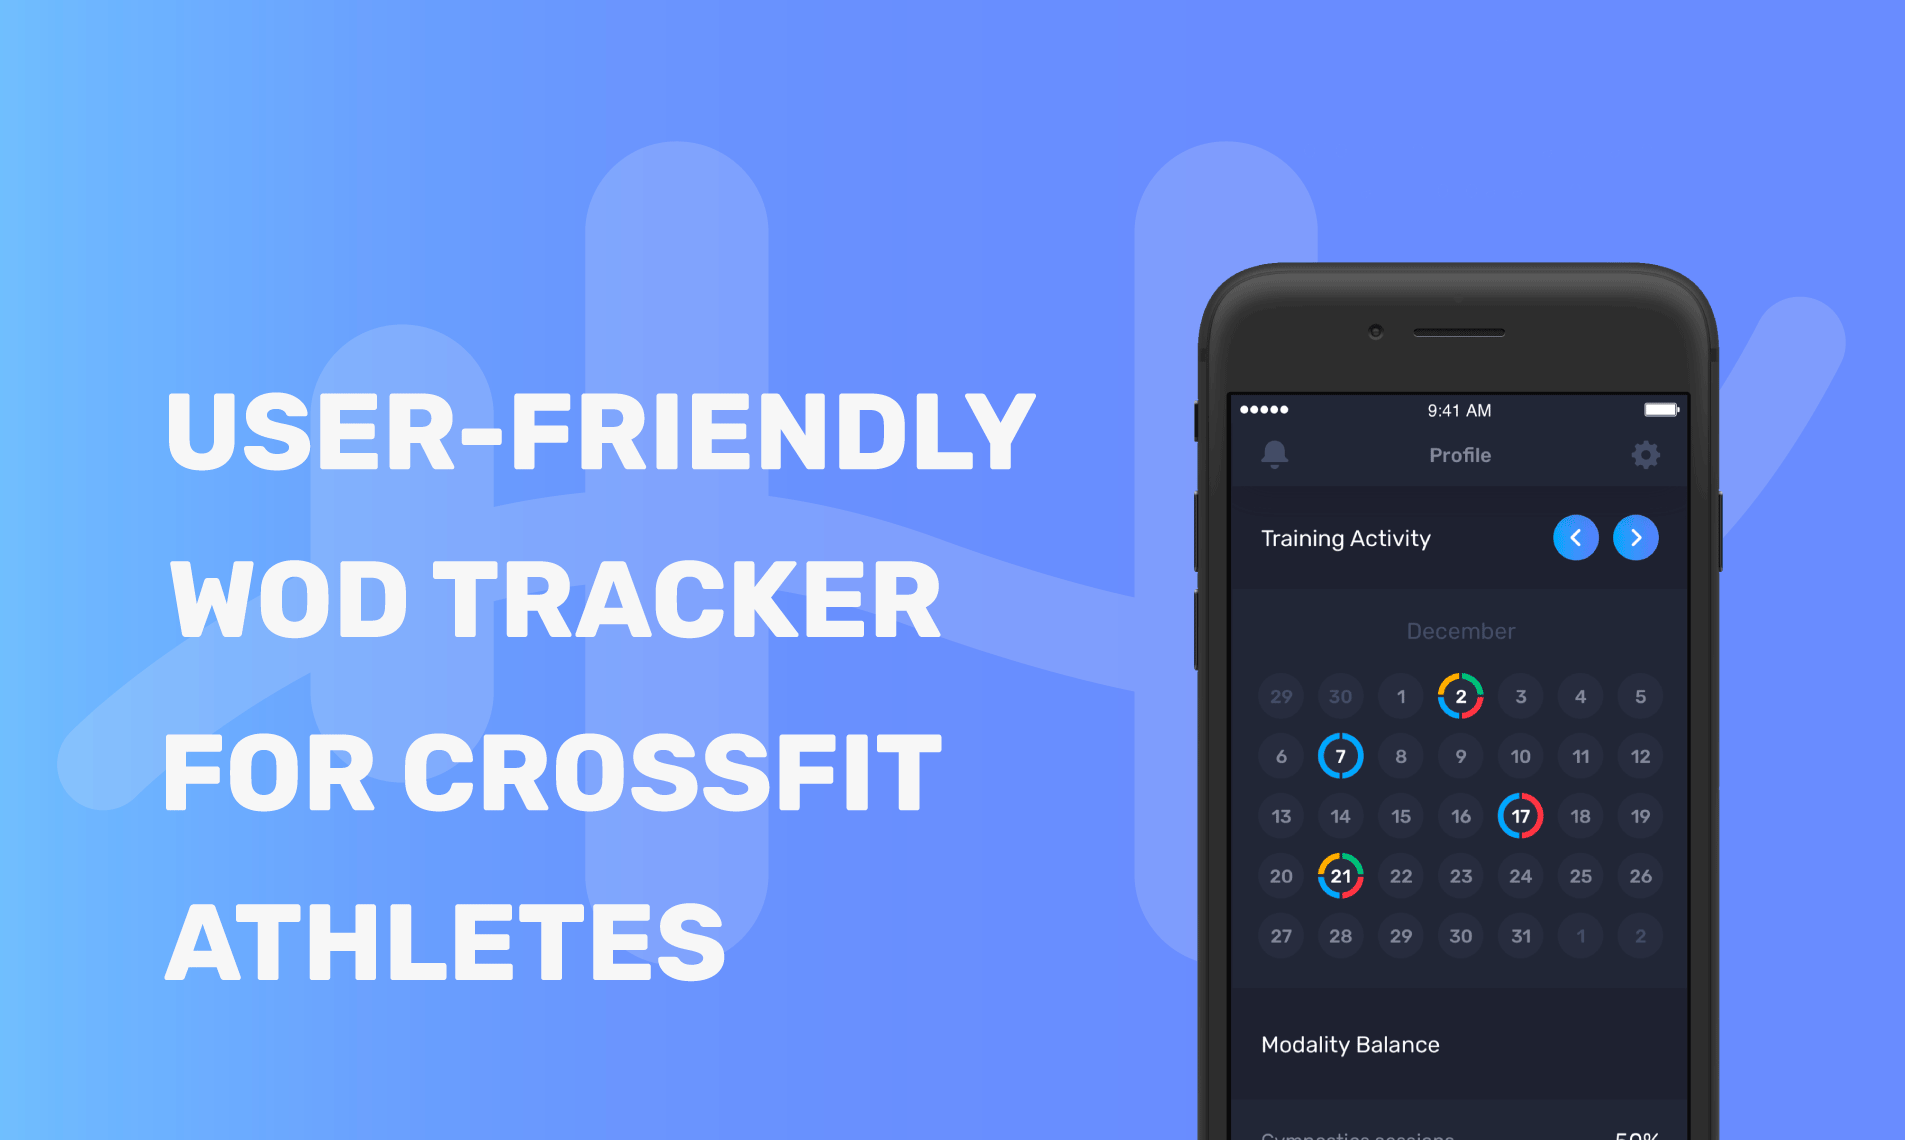 HeroSnatch - User-friendly workout tracker for CrossFit athletes